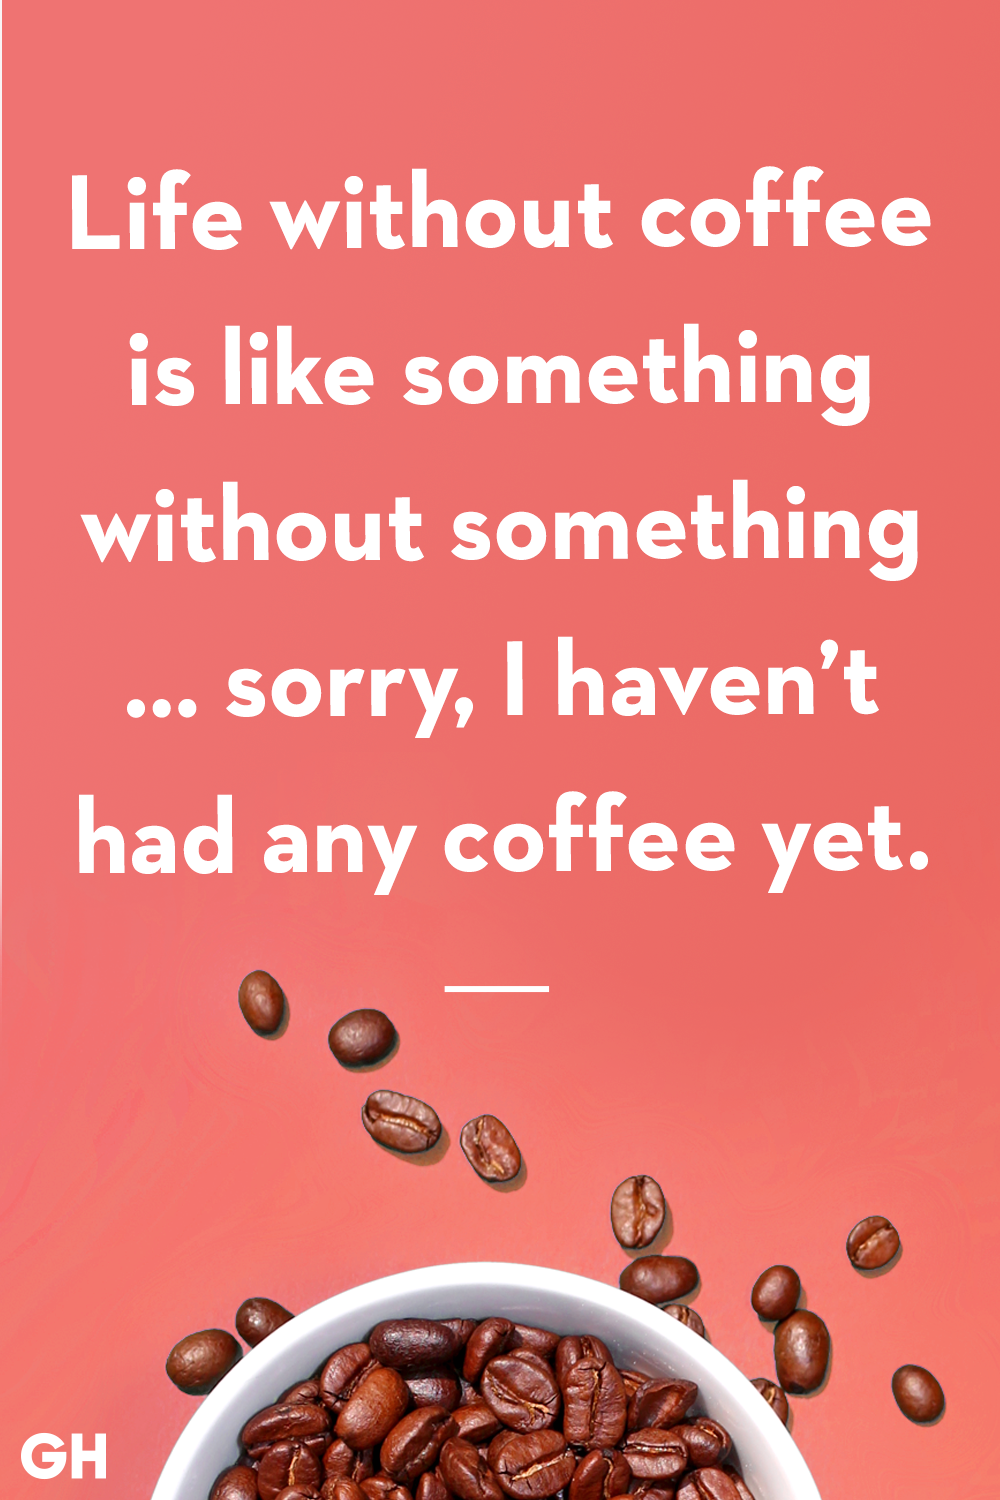 40 Funny Coffee Quotes - Best Coffee Quotes and Sayings #angryCoffee